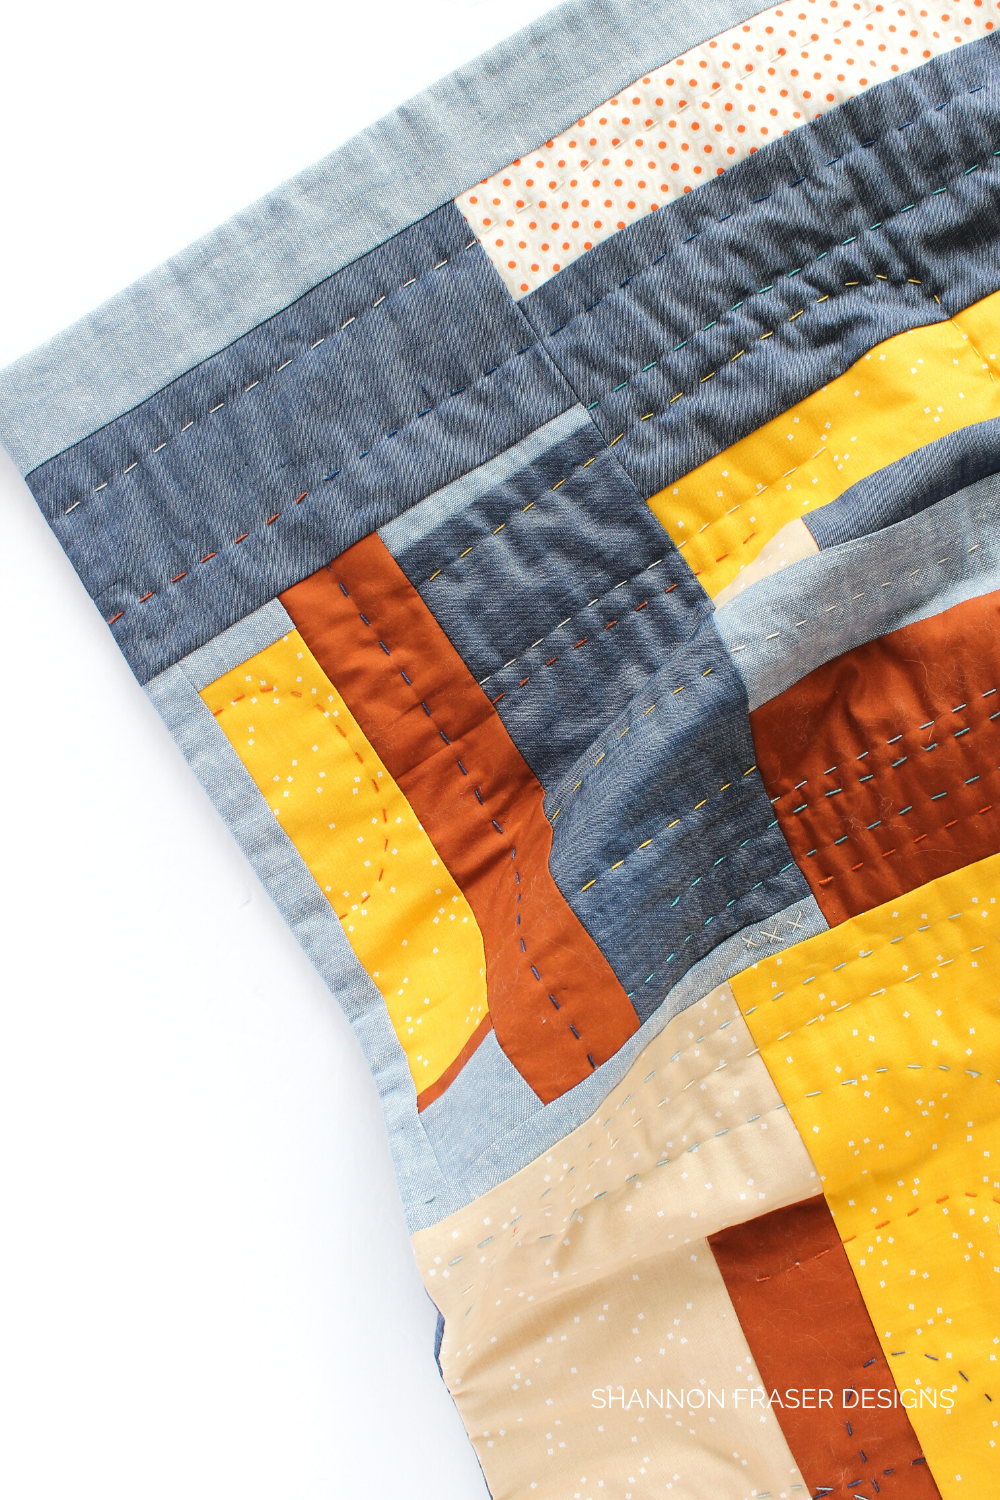 Hand quilted improv wall hanging featuring linen, denim and cotton | What I made in 2020 | Shannon Fraser Designs #modernimprovquilting